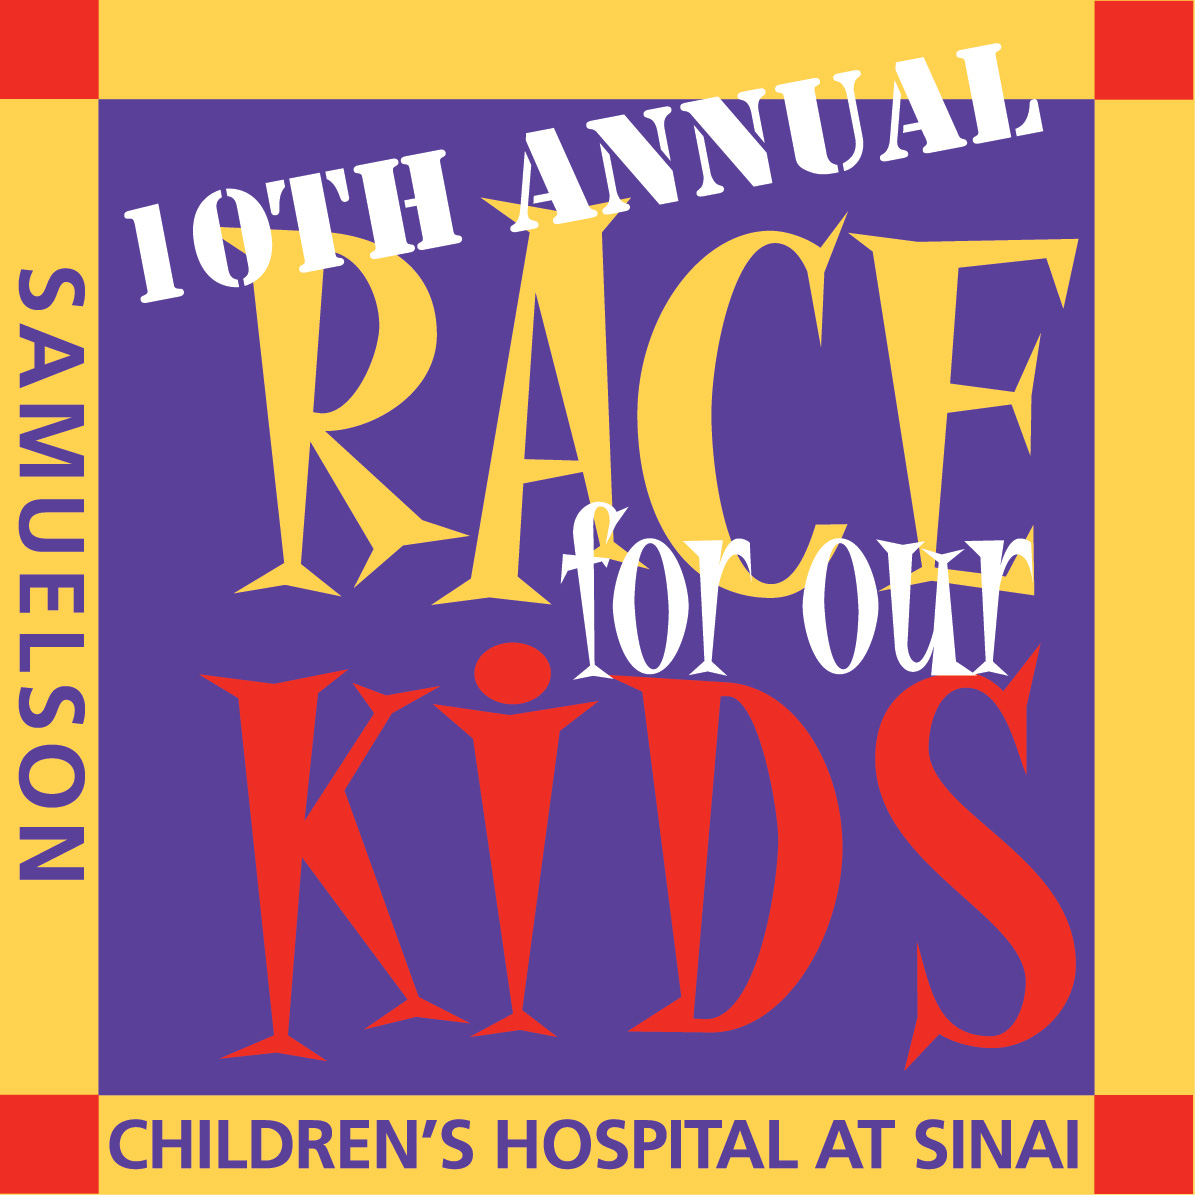 2014 Race for Our Kids event on Sunday, September 21, at 8 a.m.